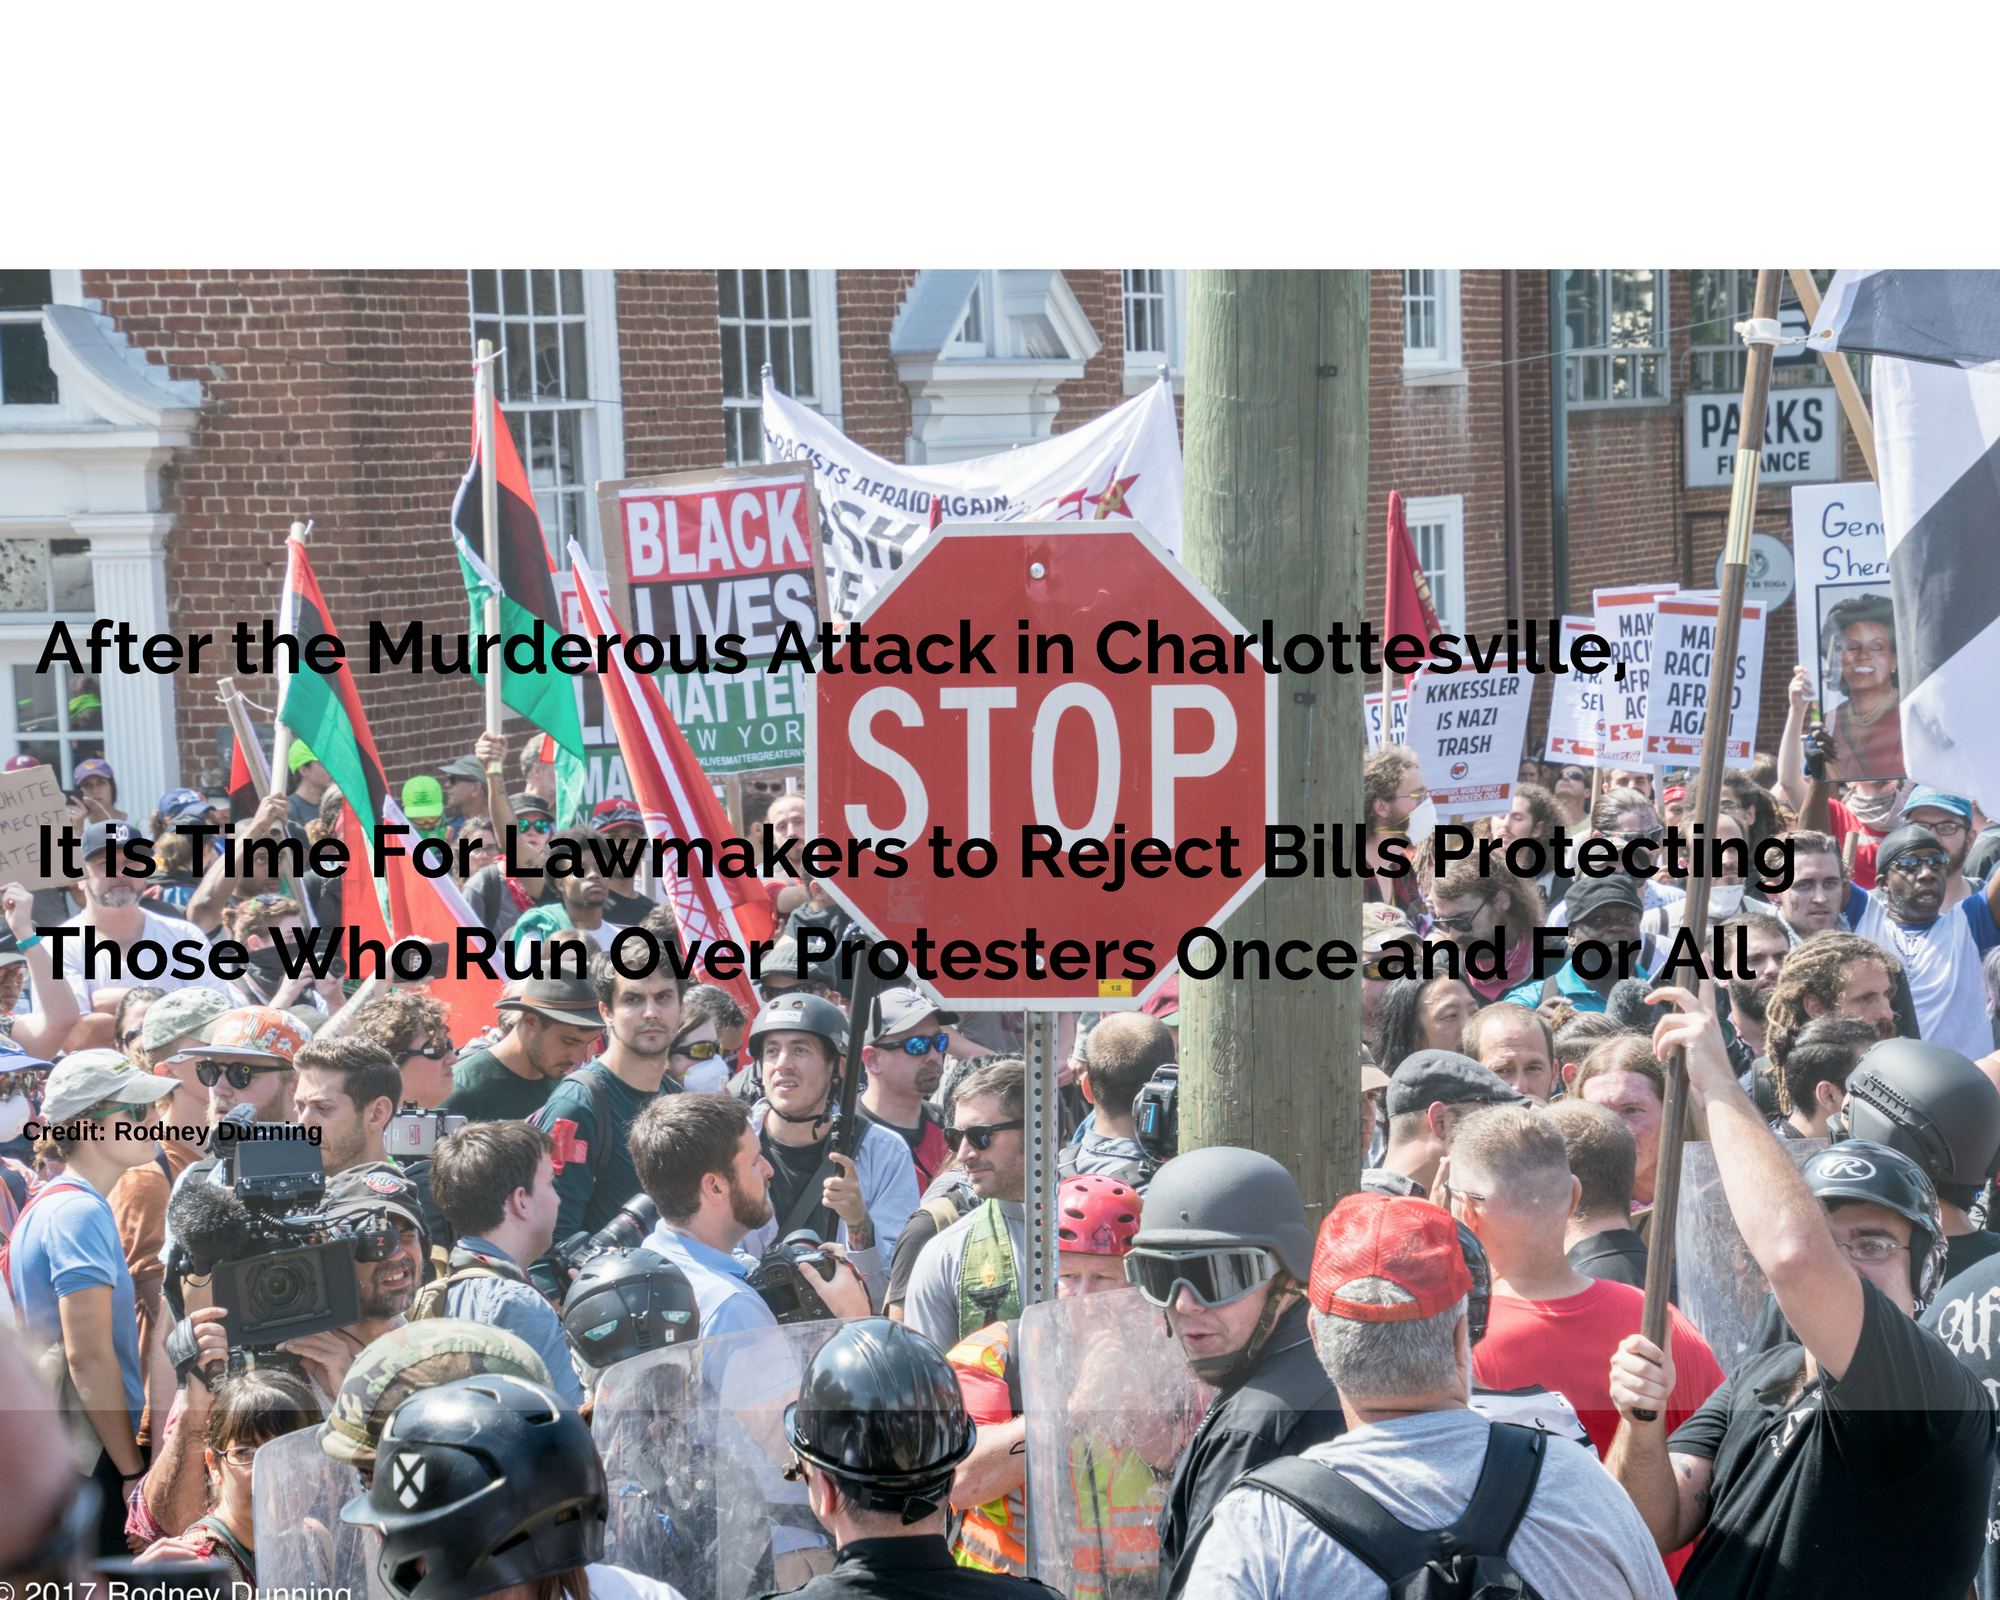 stop running over protesters